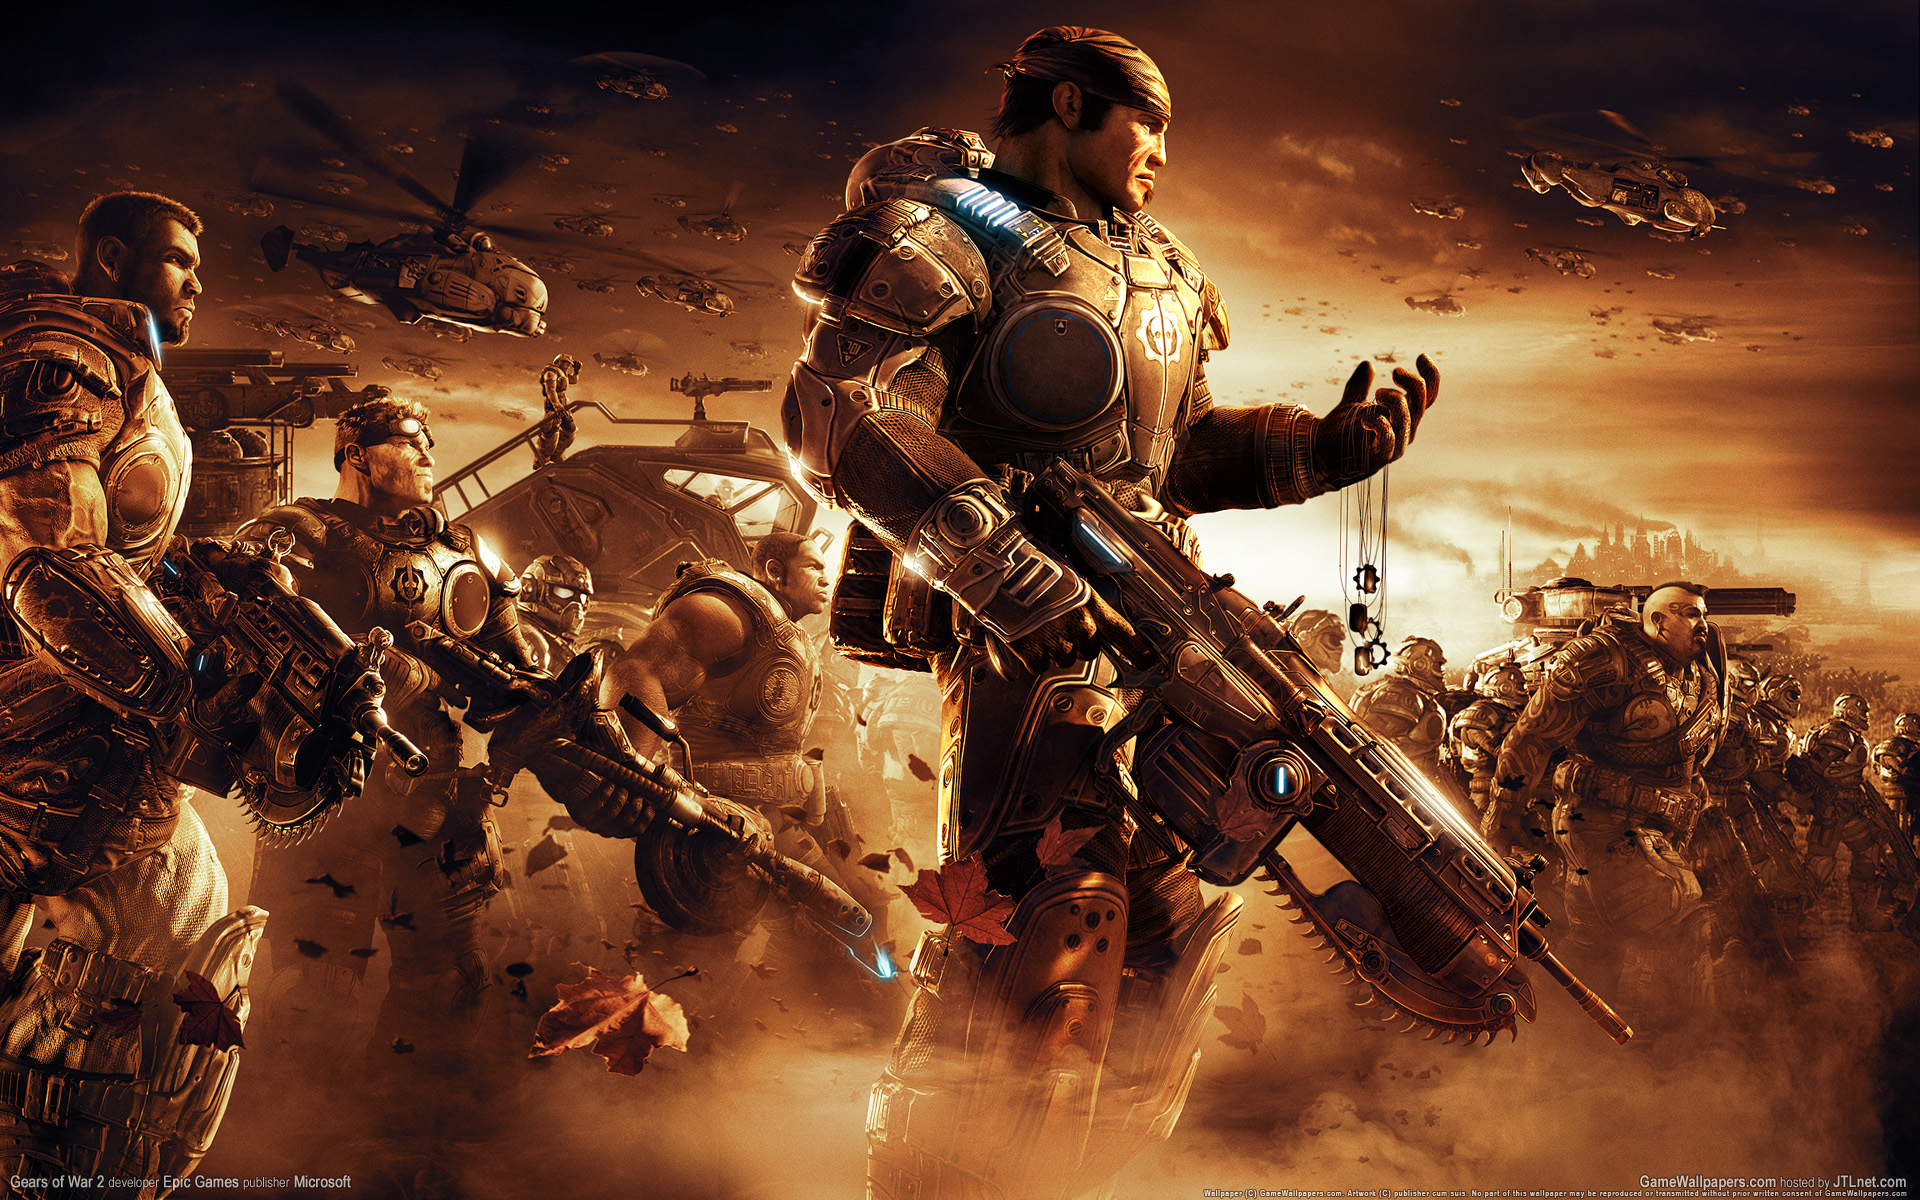 Download 3D game 'Gears of War' HQ wallpapers.